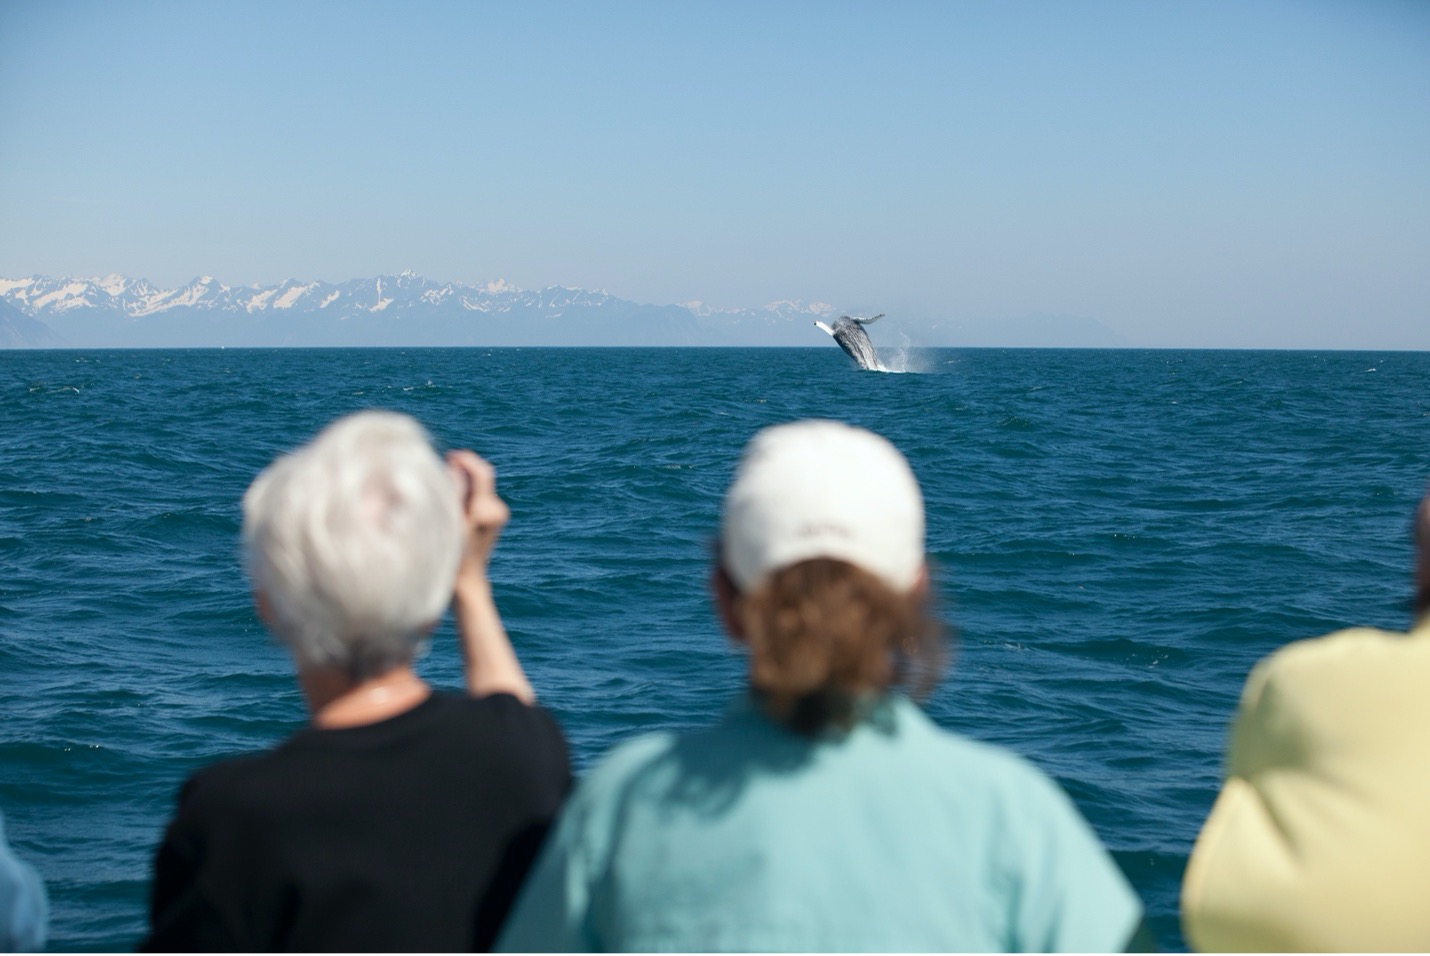 people view a breaching humpback whale in Kenai Fjords in Alaska